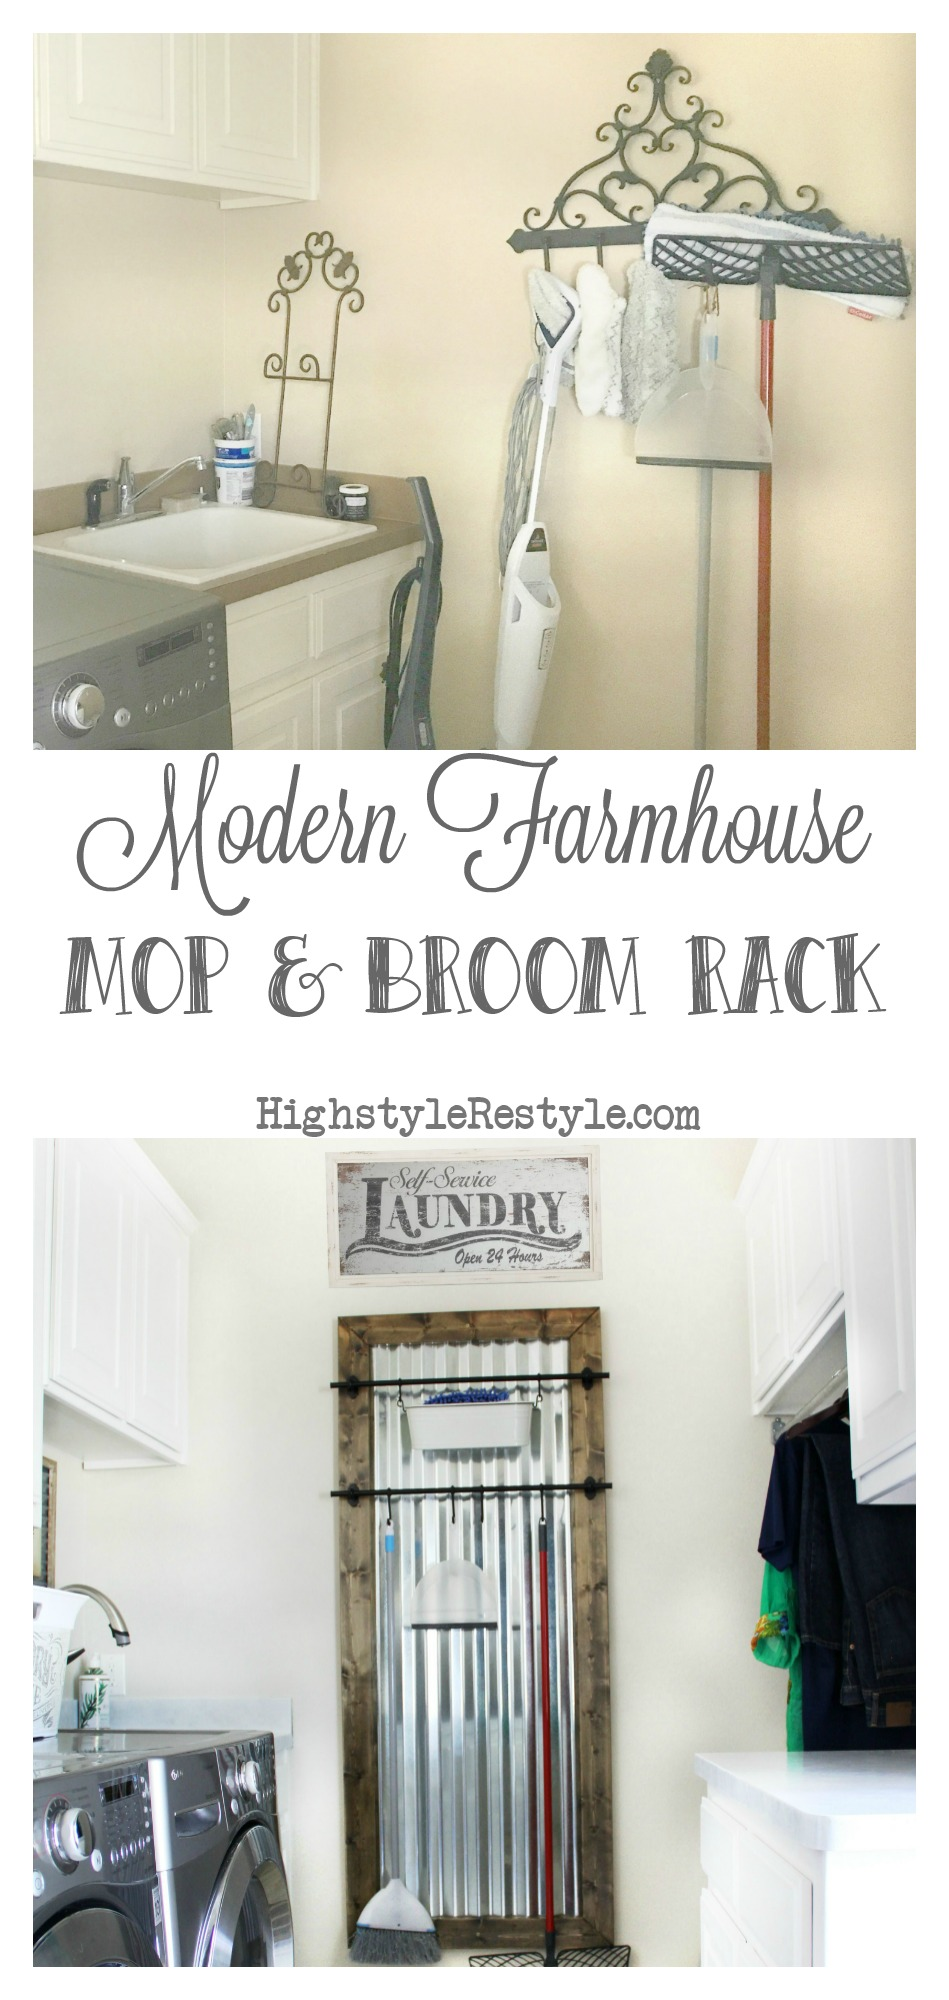 Modern Farmhouse Mop Broom Rack.jpg